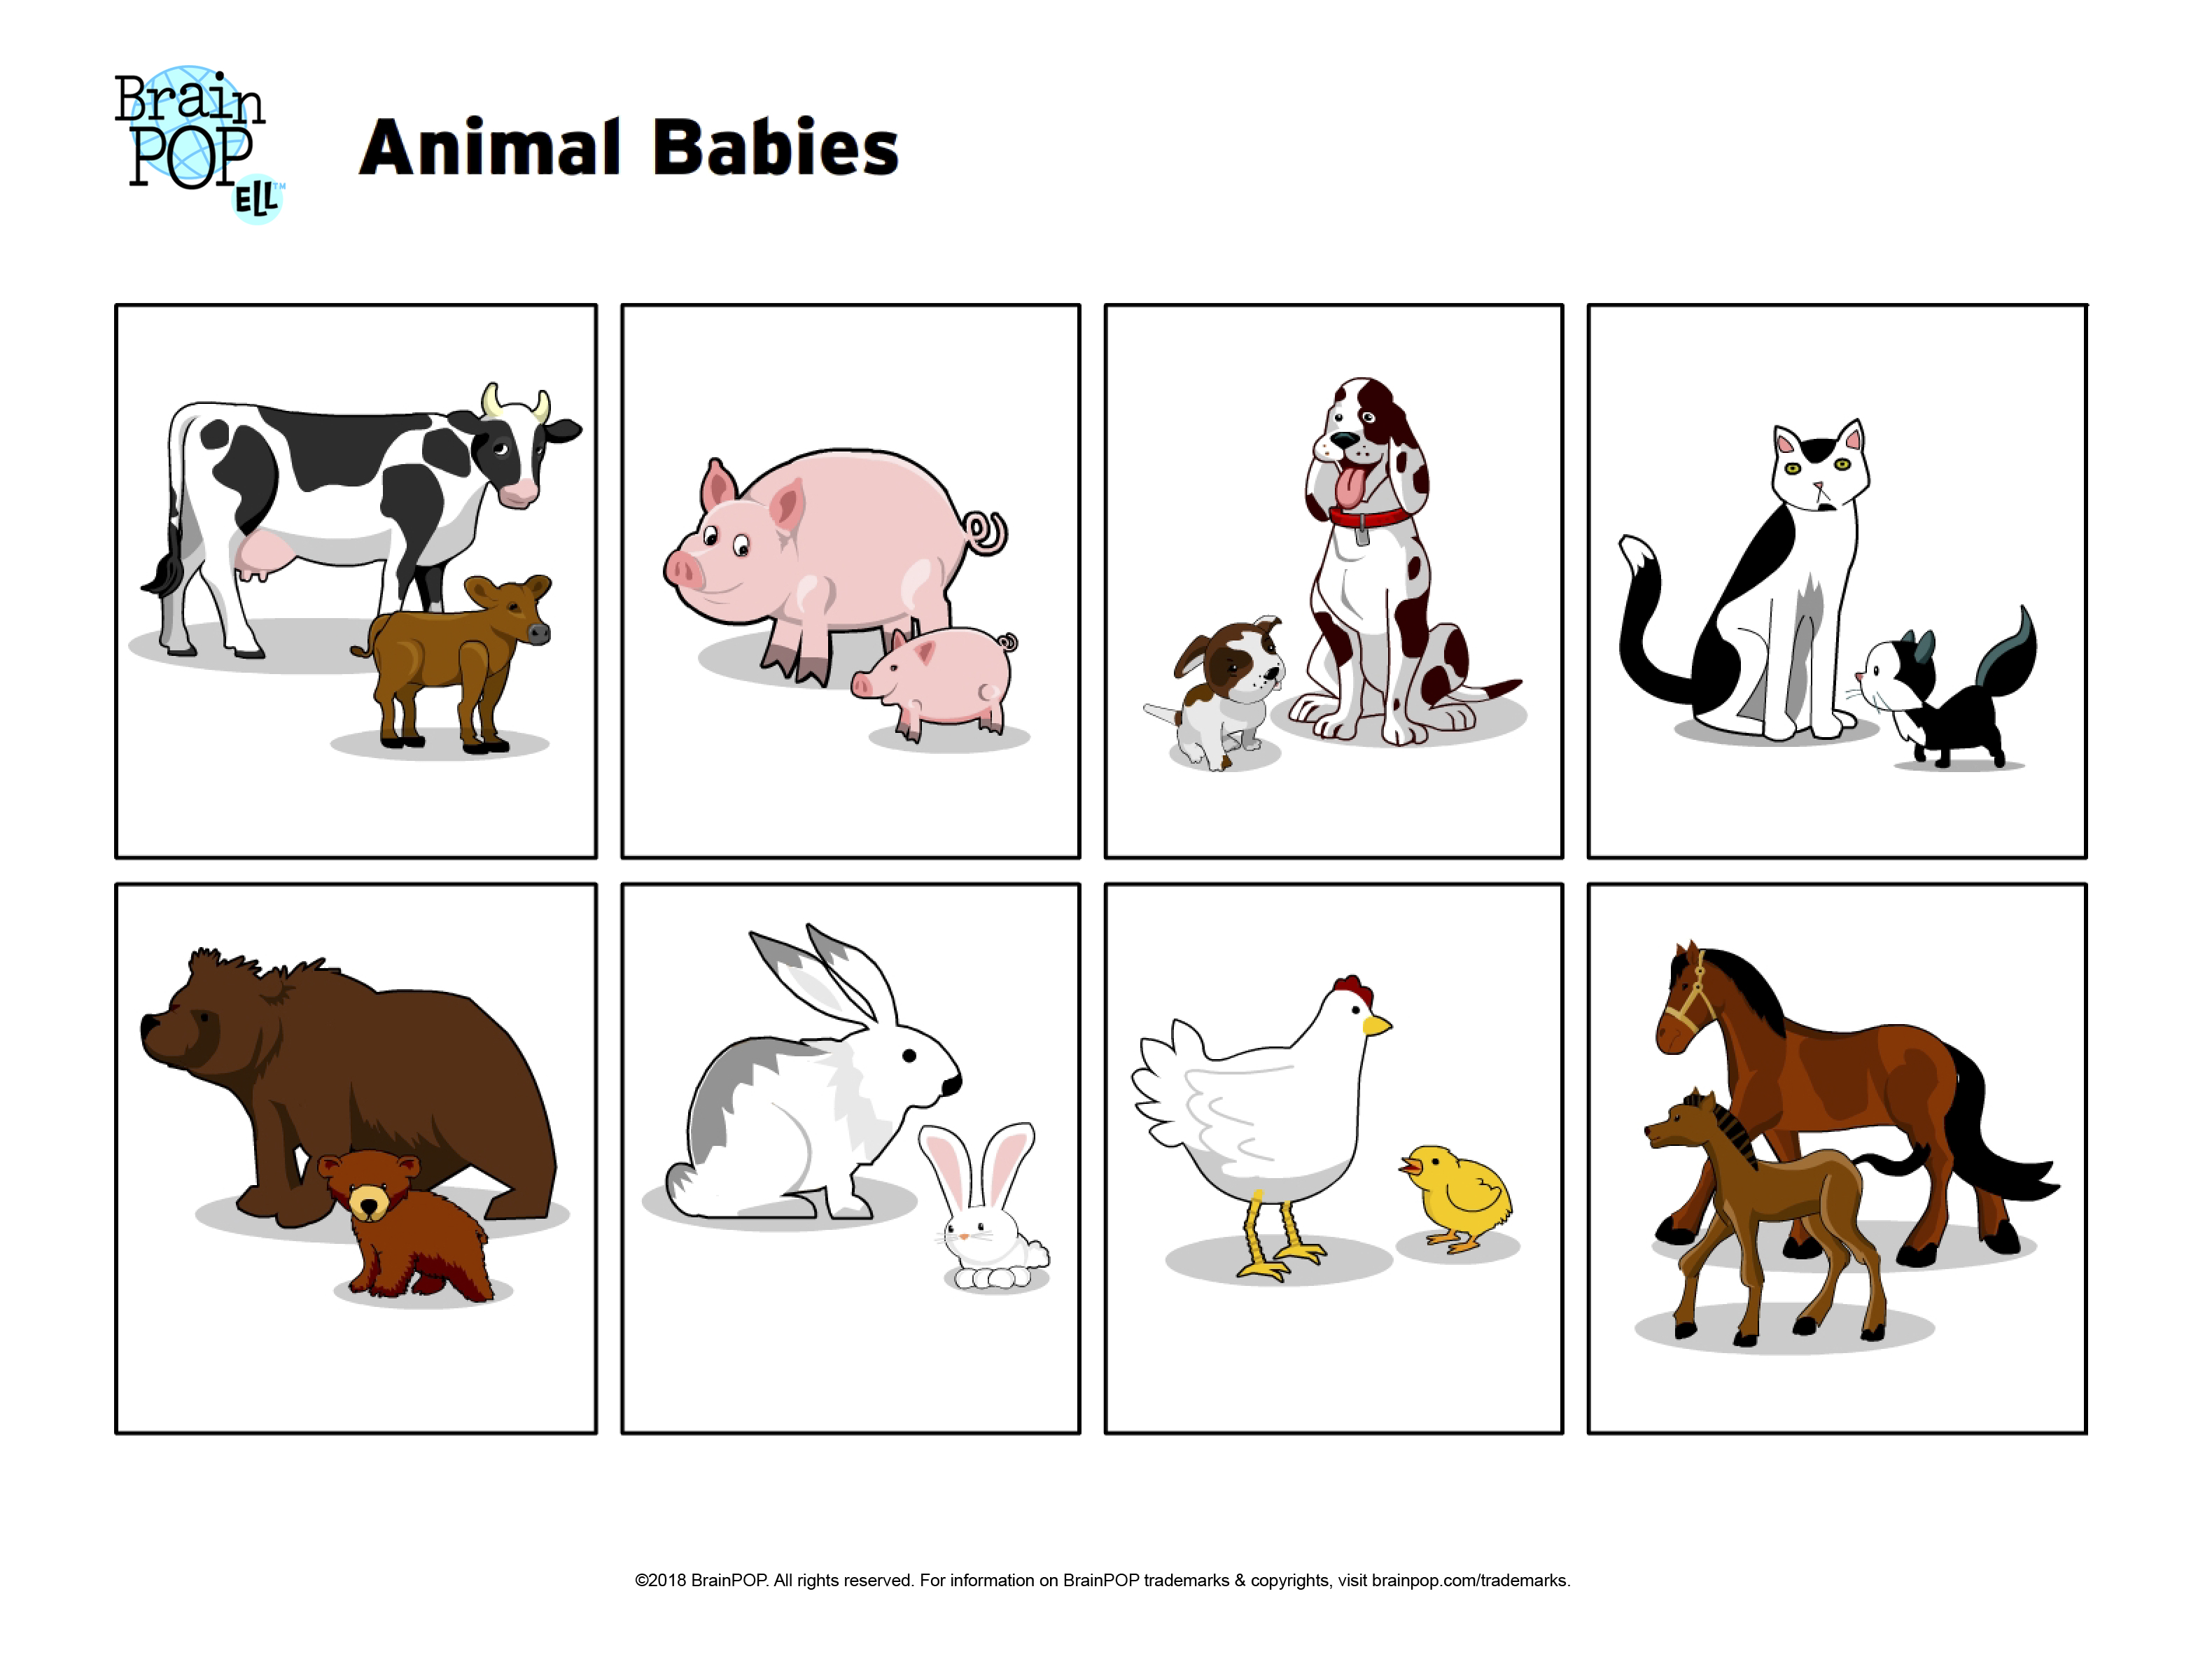 Animal Babies Image Prompt